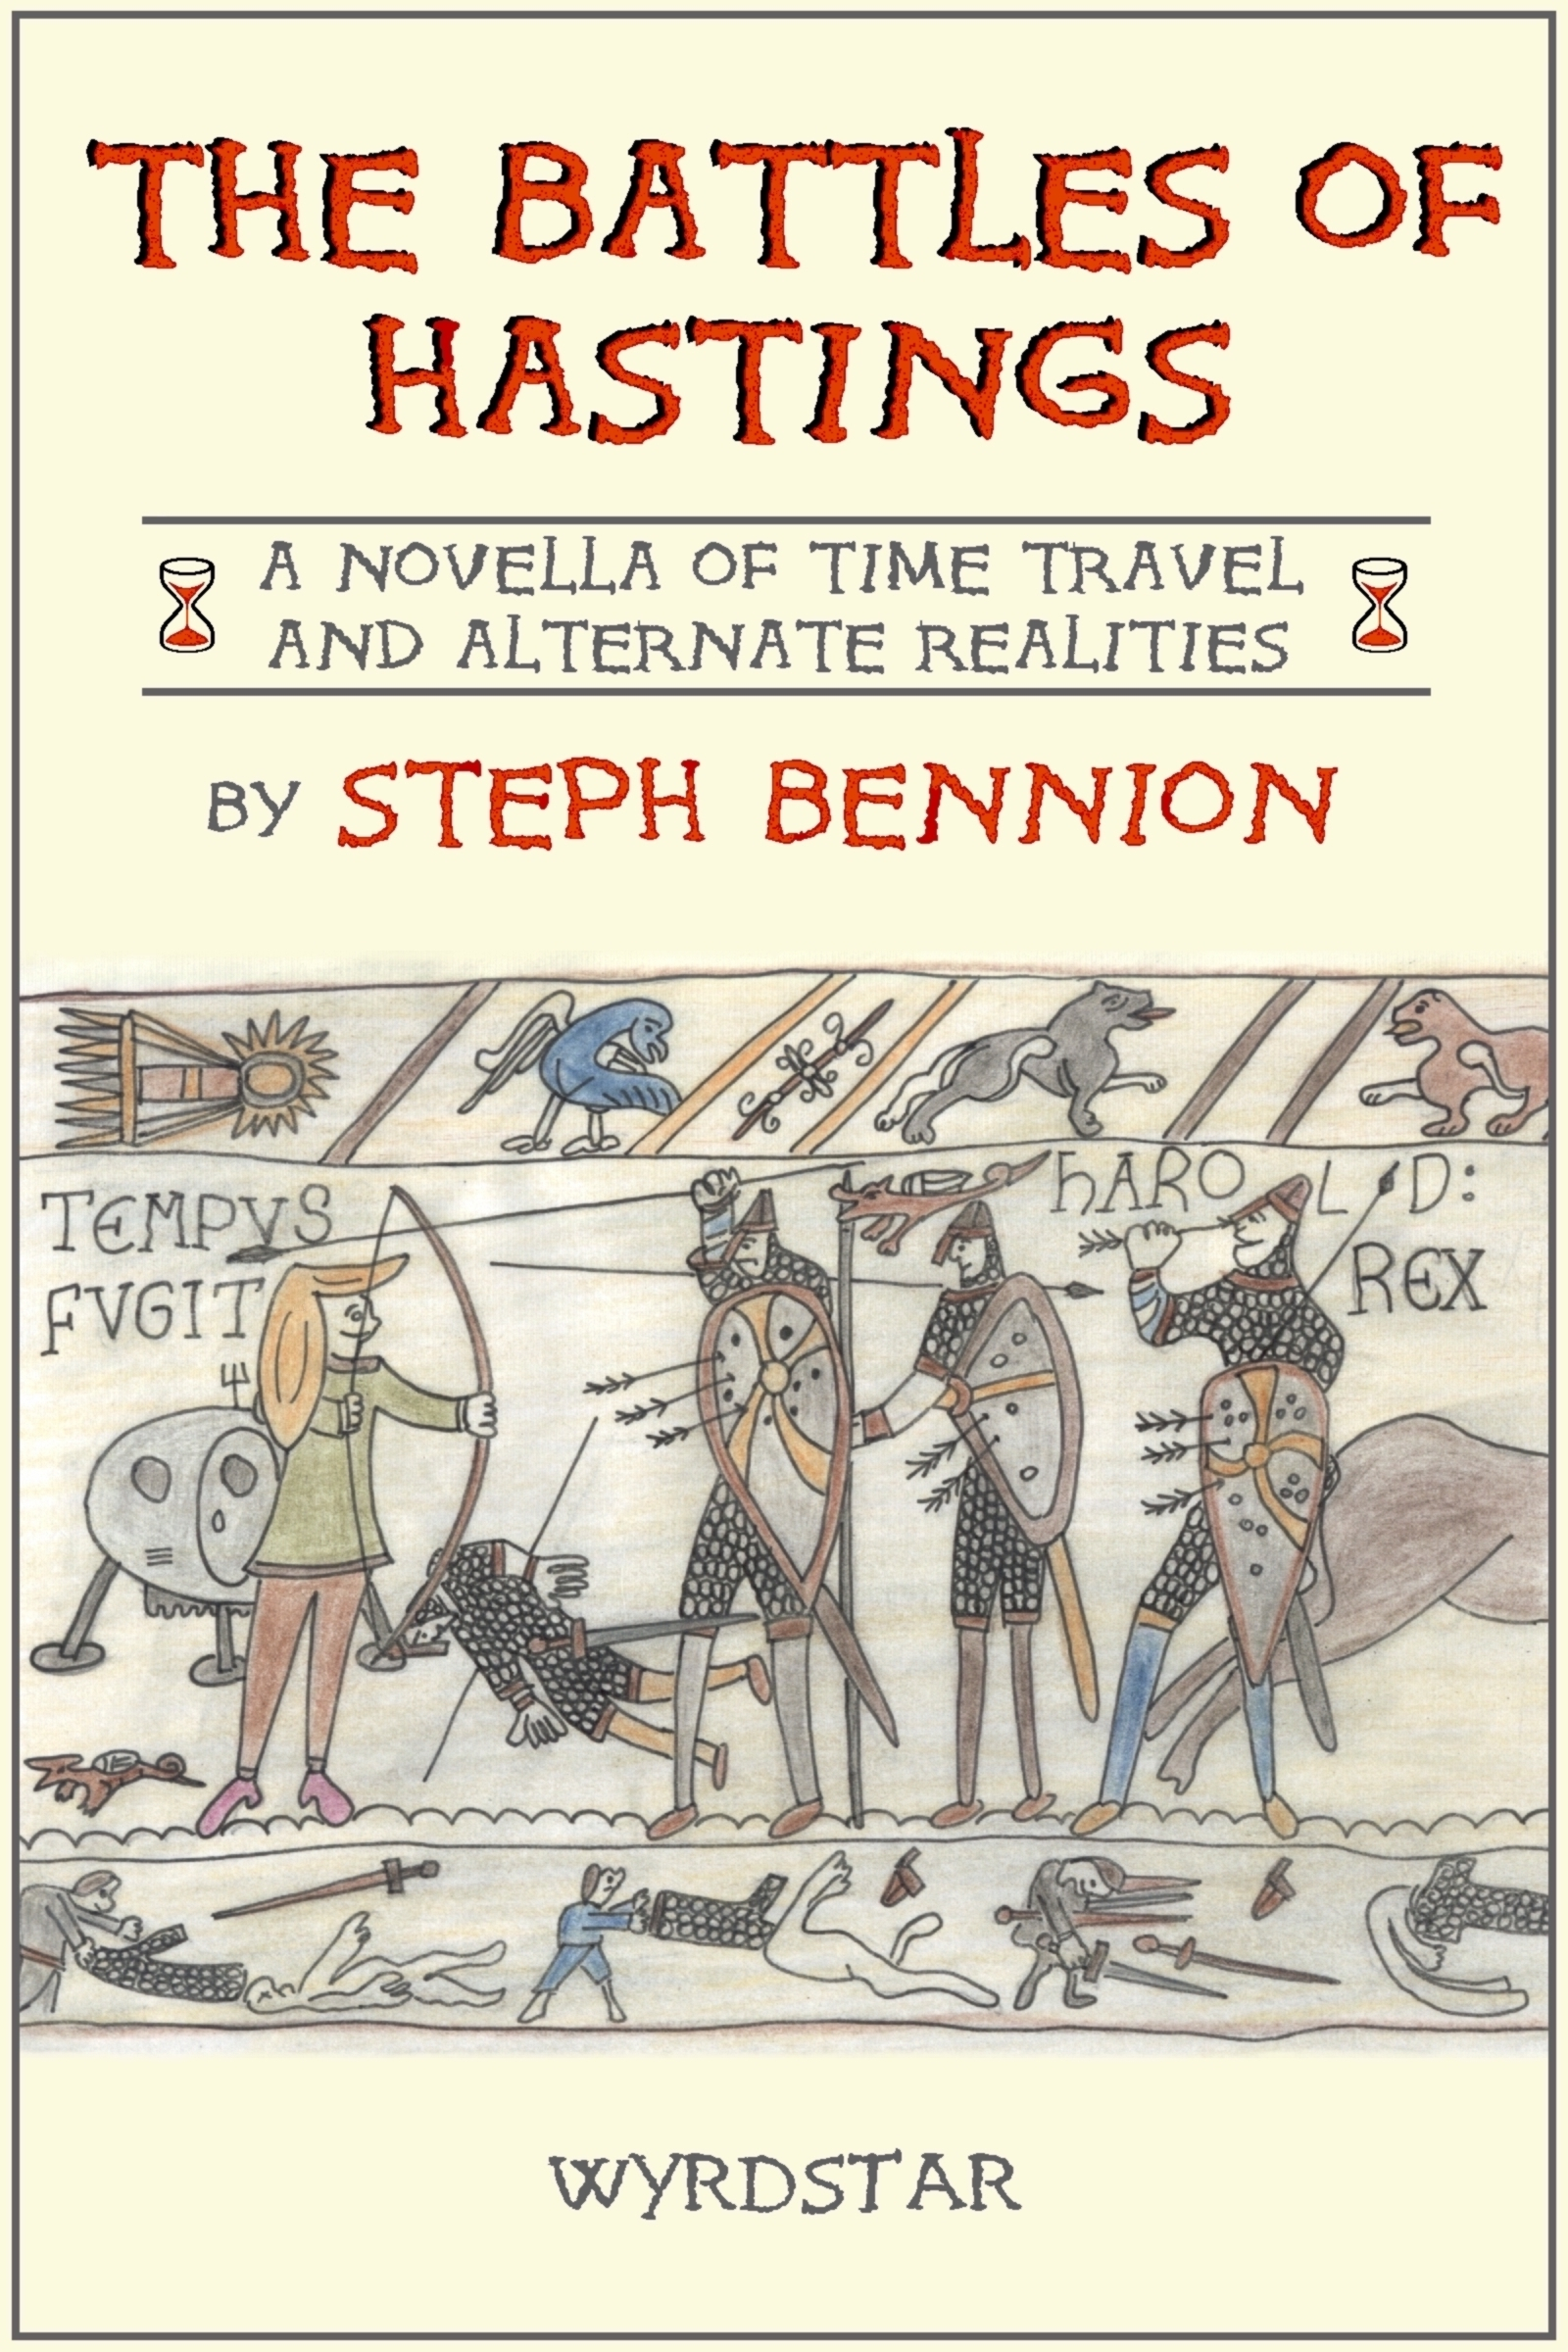 The Battles of Hastings text